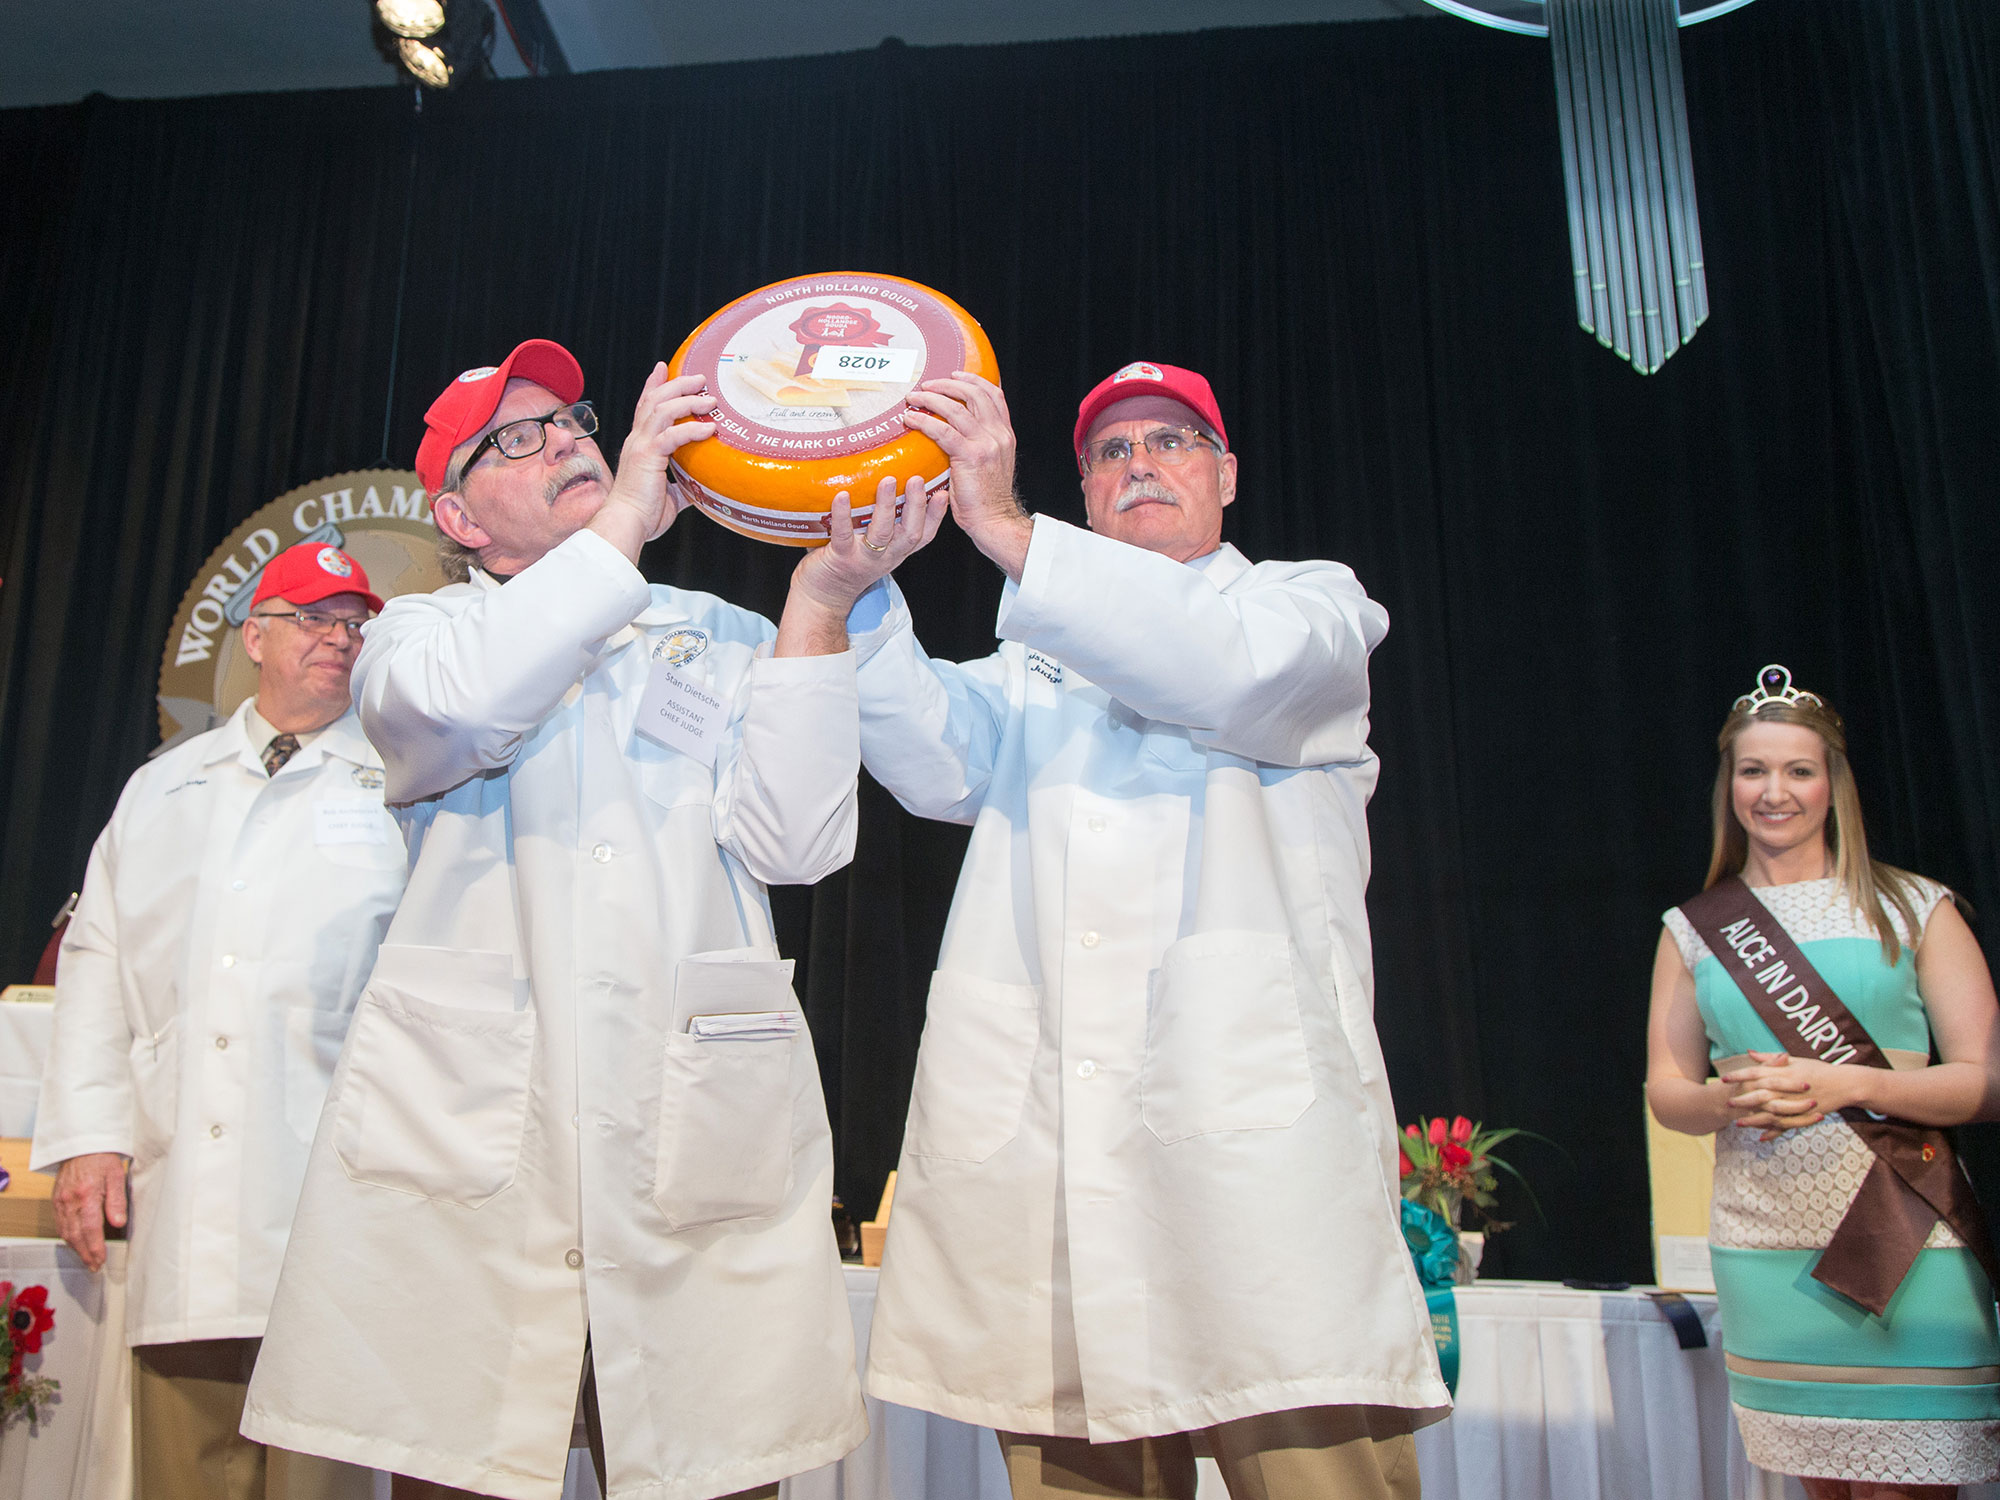 Jim Mueller (right) holding up a winning cheese from the contest with another Assistant Chief Judge, Stan Dietsche